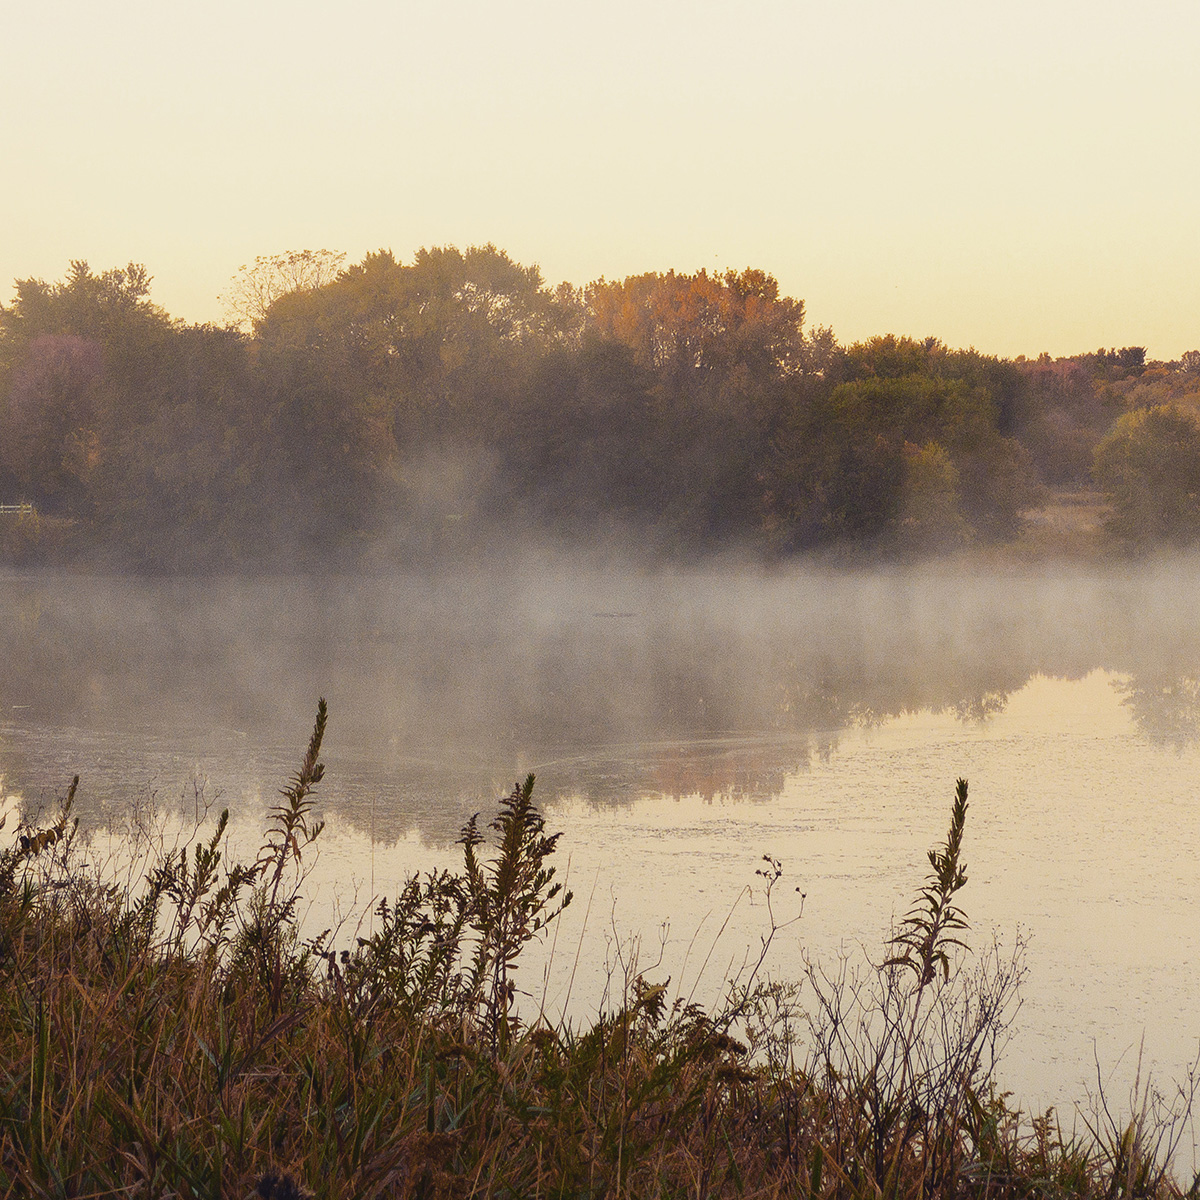 A cloud of mist at McKee Farms Park in Fitchburg, Wisconsin